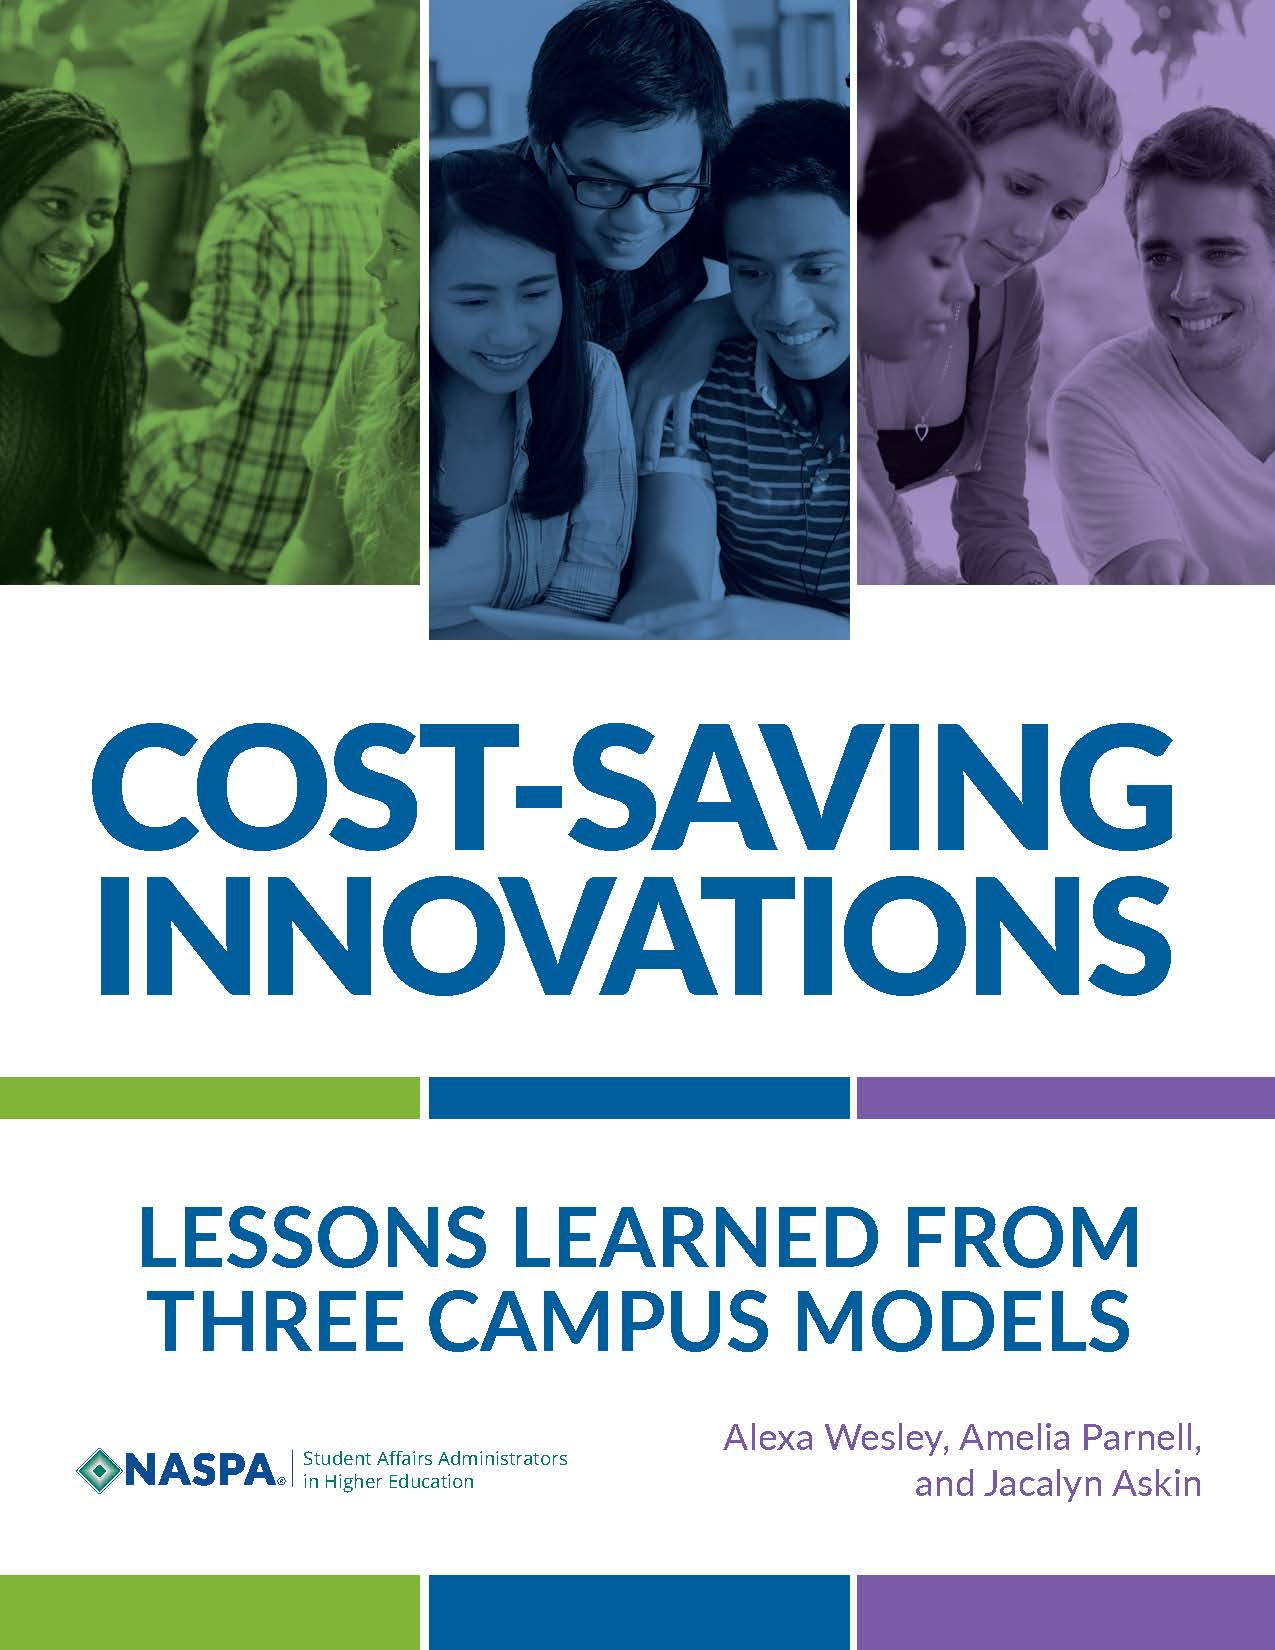 Cost-Saving Innovations Cover